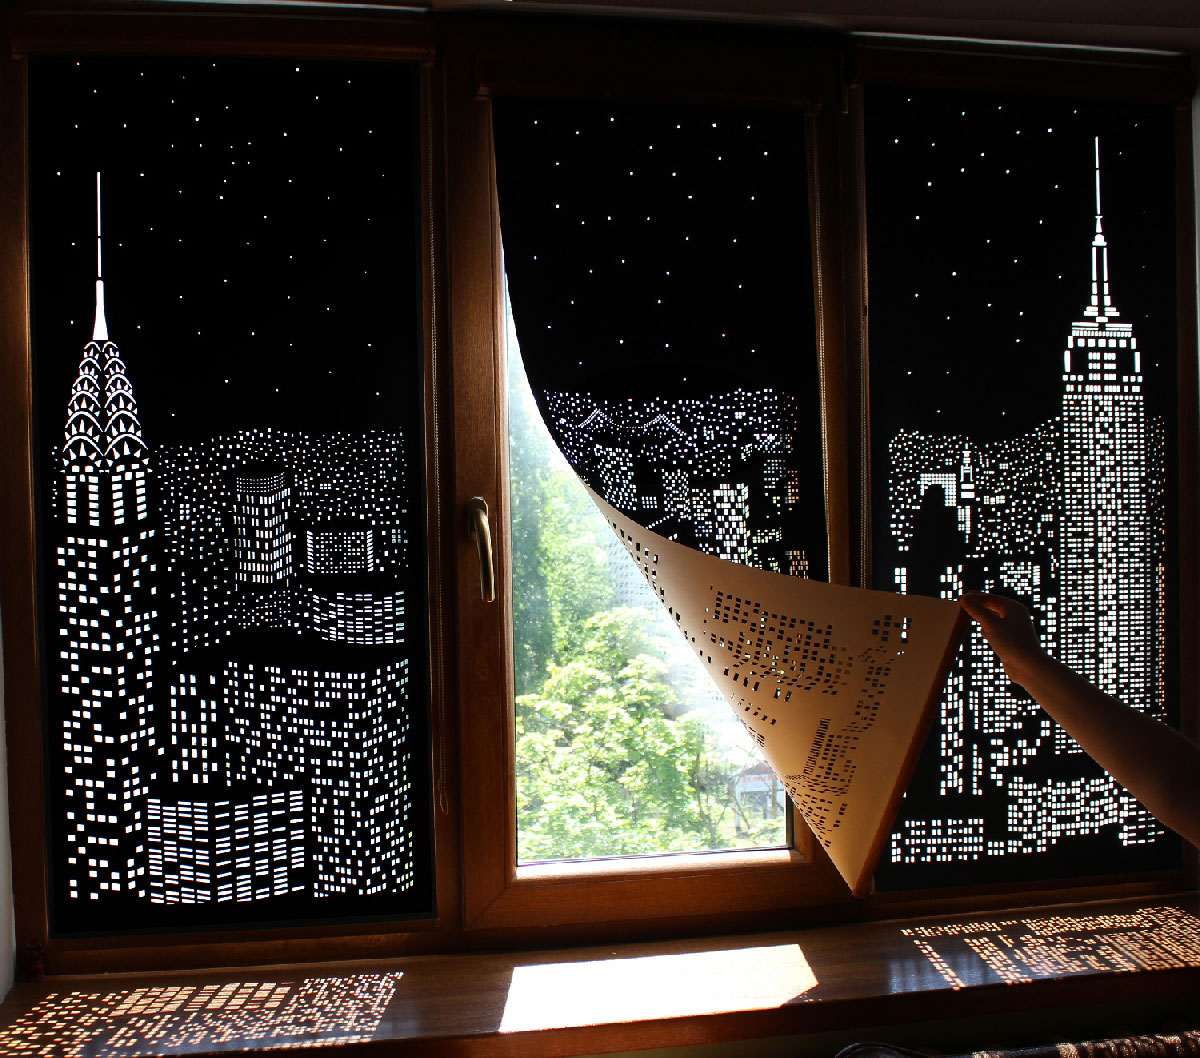 Buildings and Stars Cut into Blackout Curtains Turn Your Windows Into Nighttime Cityscapes (5 pics)